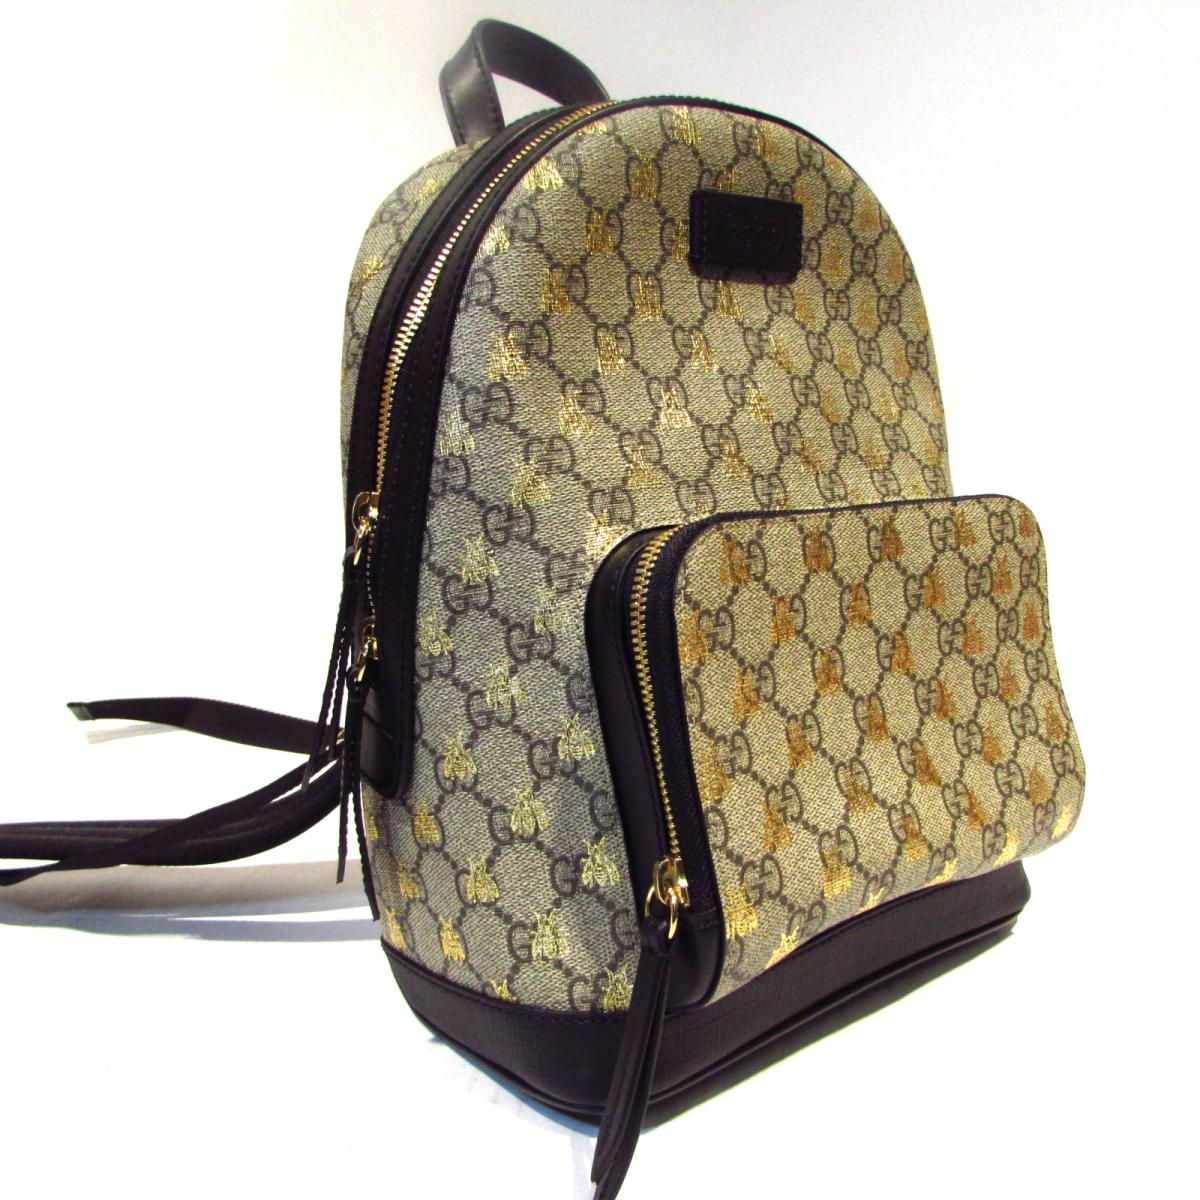 Auth GUCCI GG supreme Bee print Rucksack backpack bag 427042 canvas  Beige/Gold Used